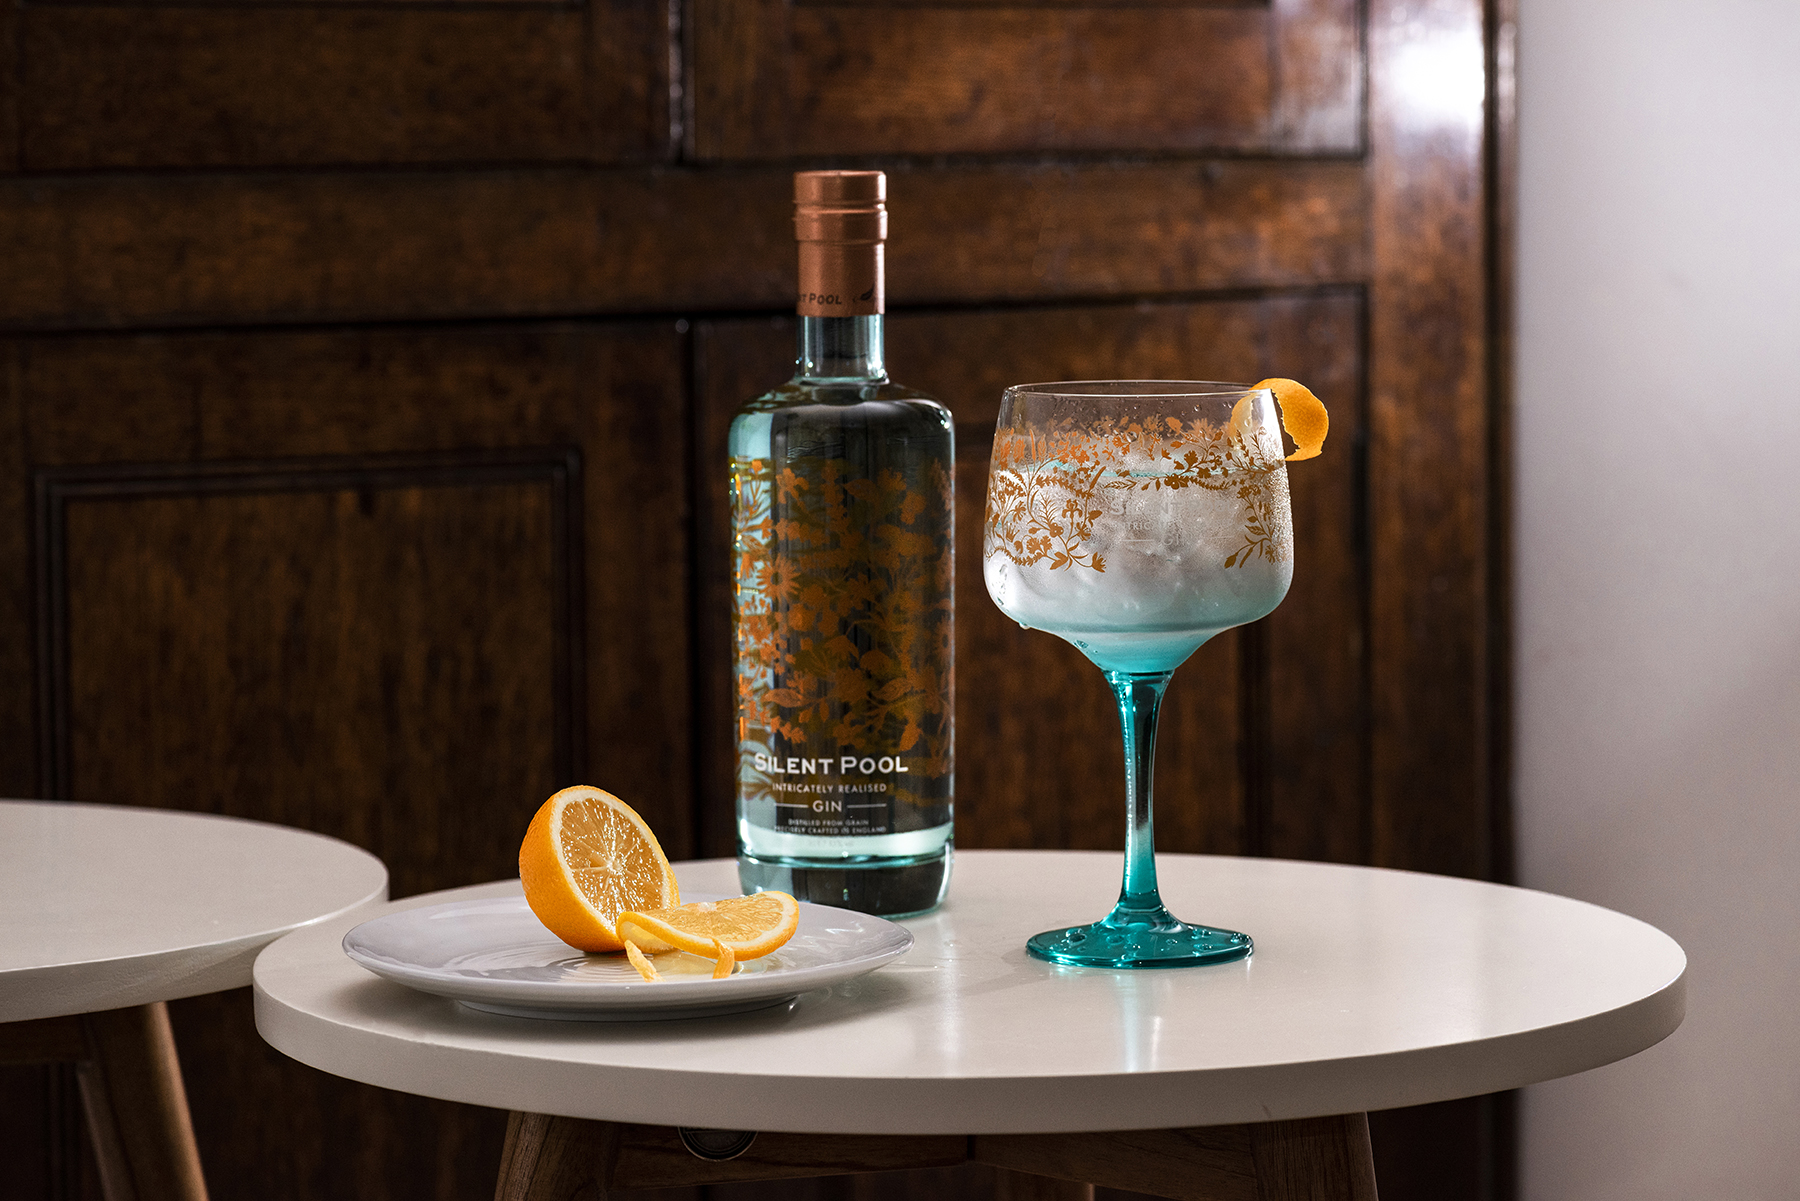 Cocktail Recipes Featuring Silent Pool Gin photo